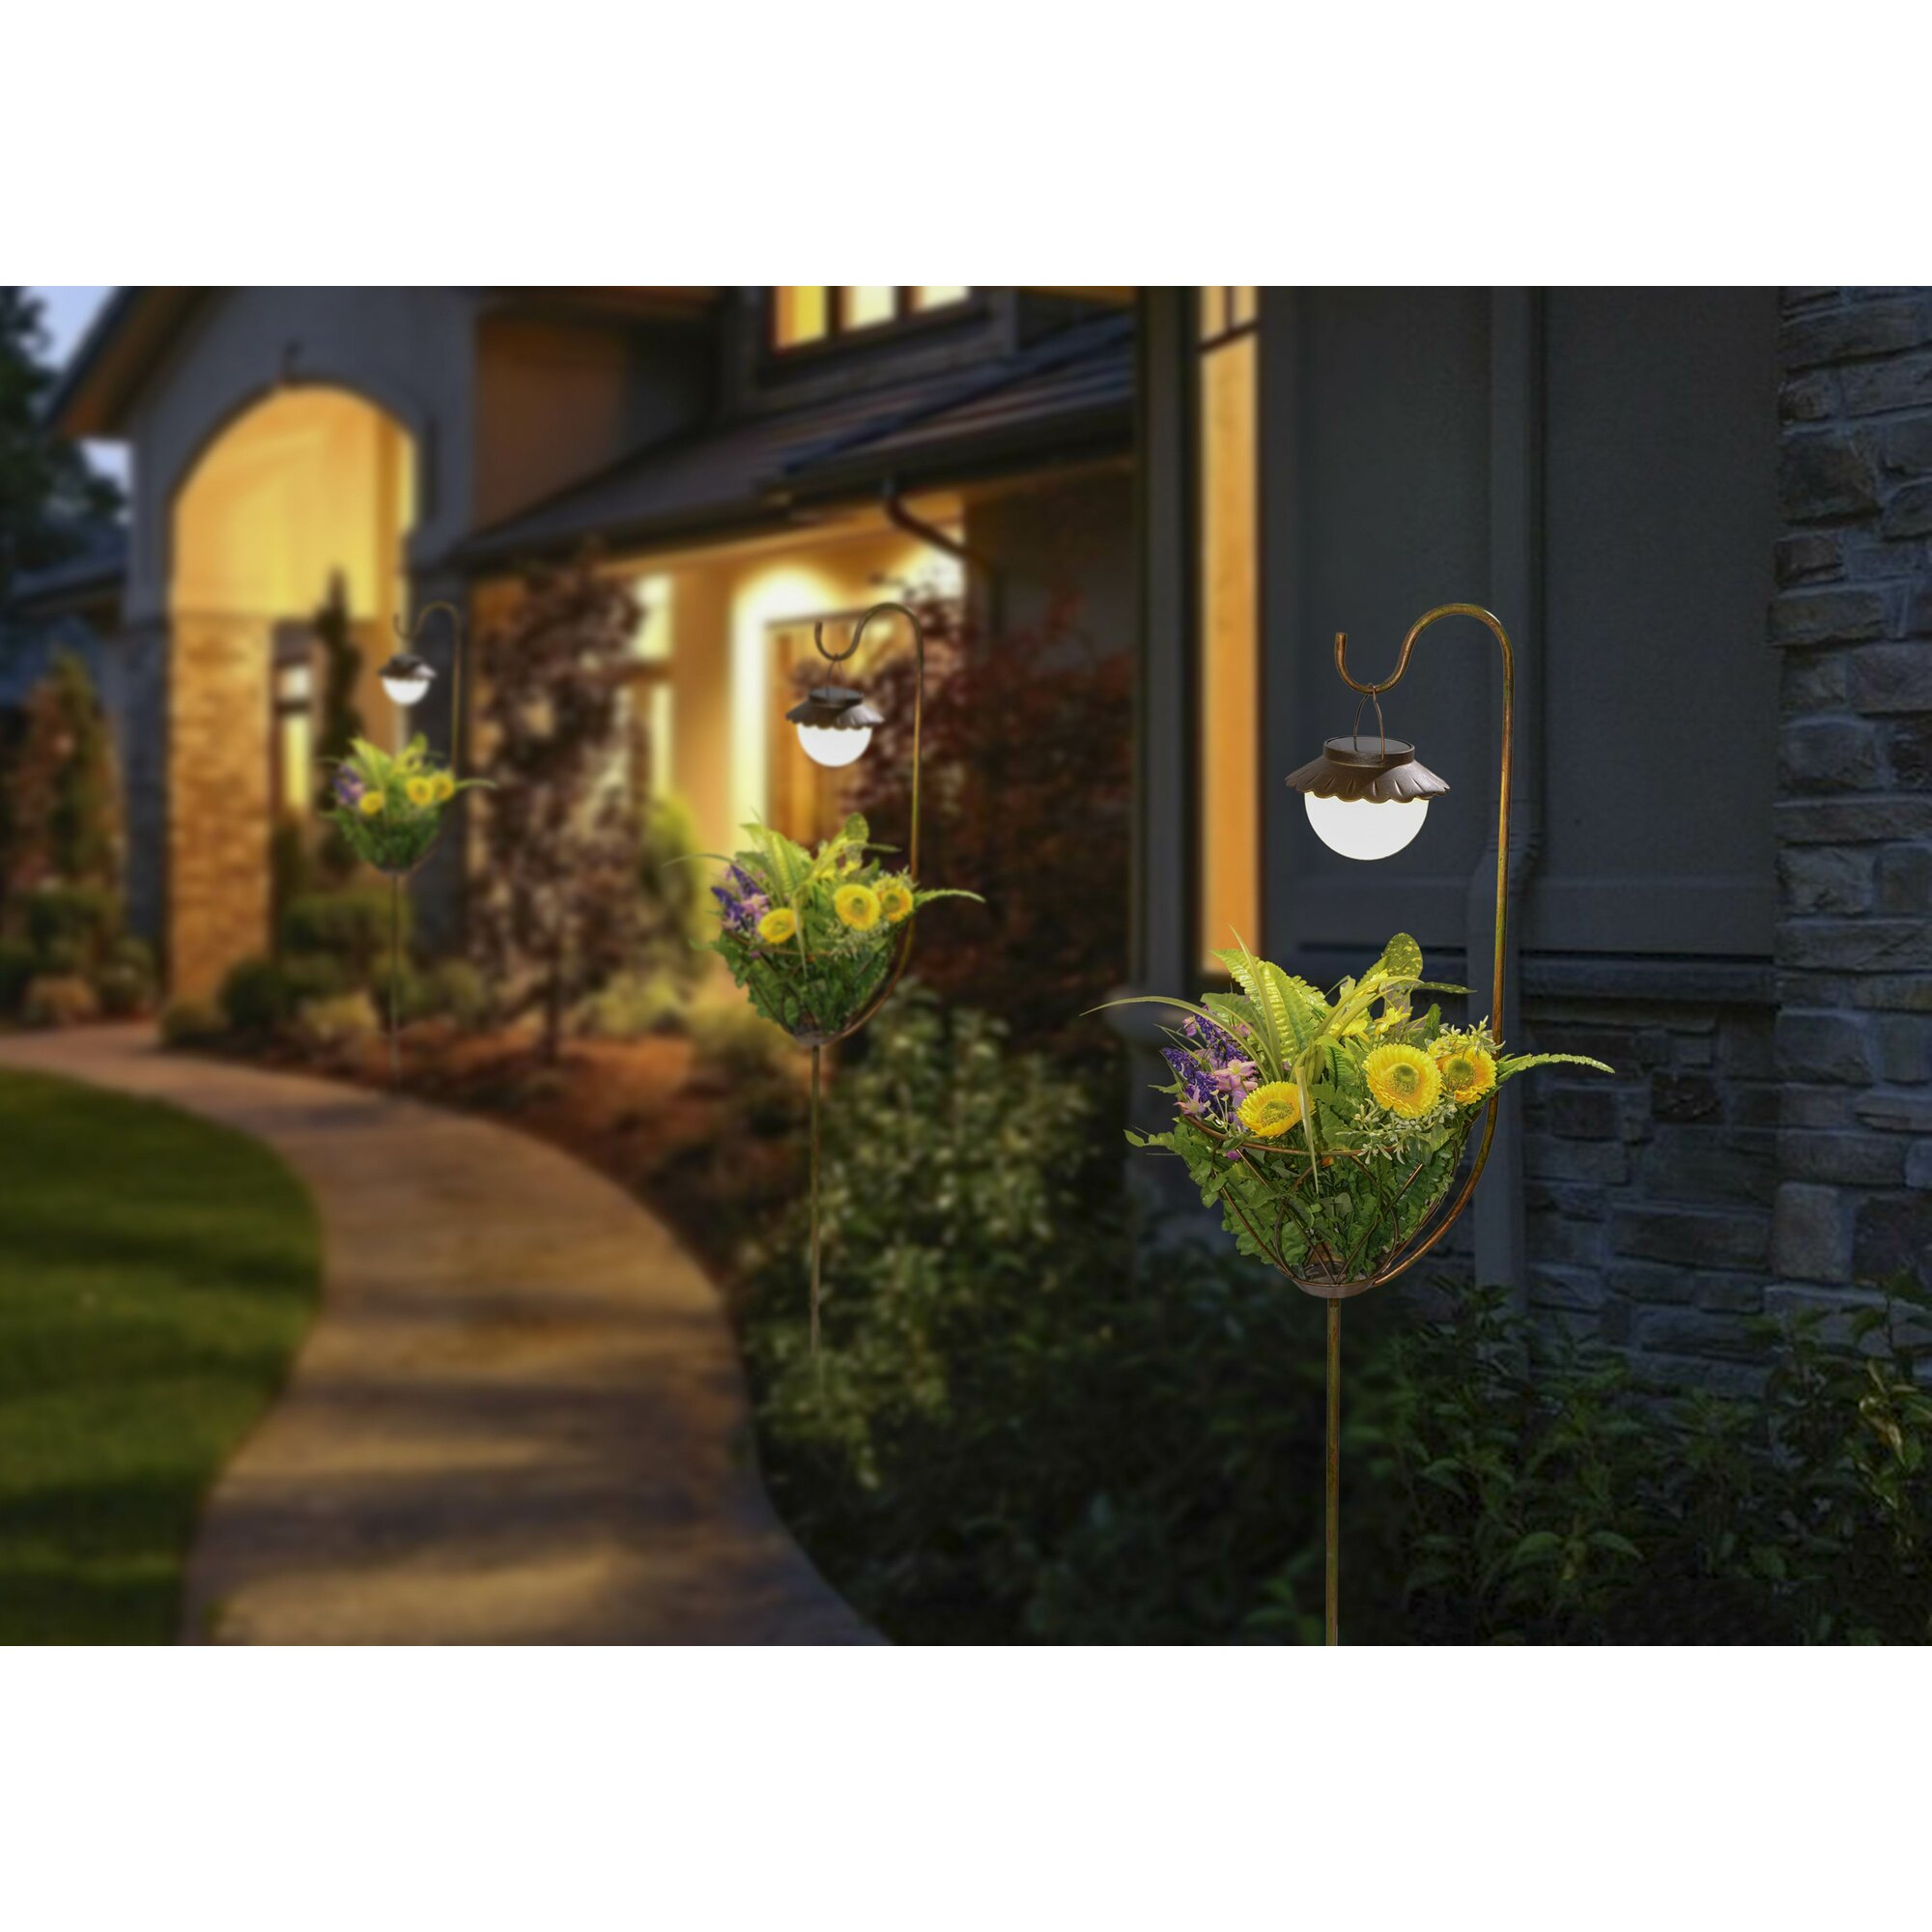 Professional Solar Pedestal Light: WinsomeHouse Pedestal Plant Stand With Solar Light